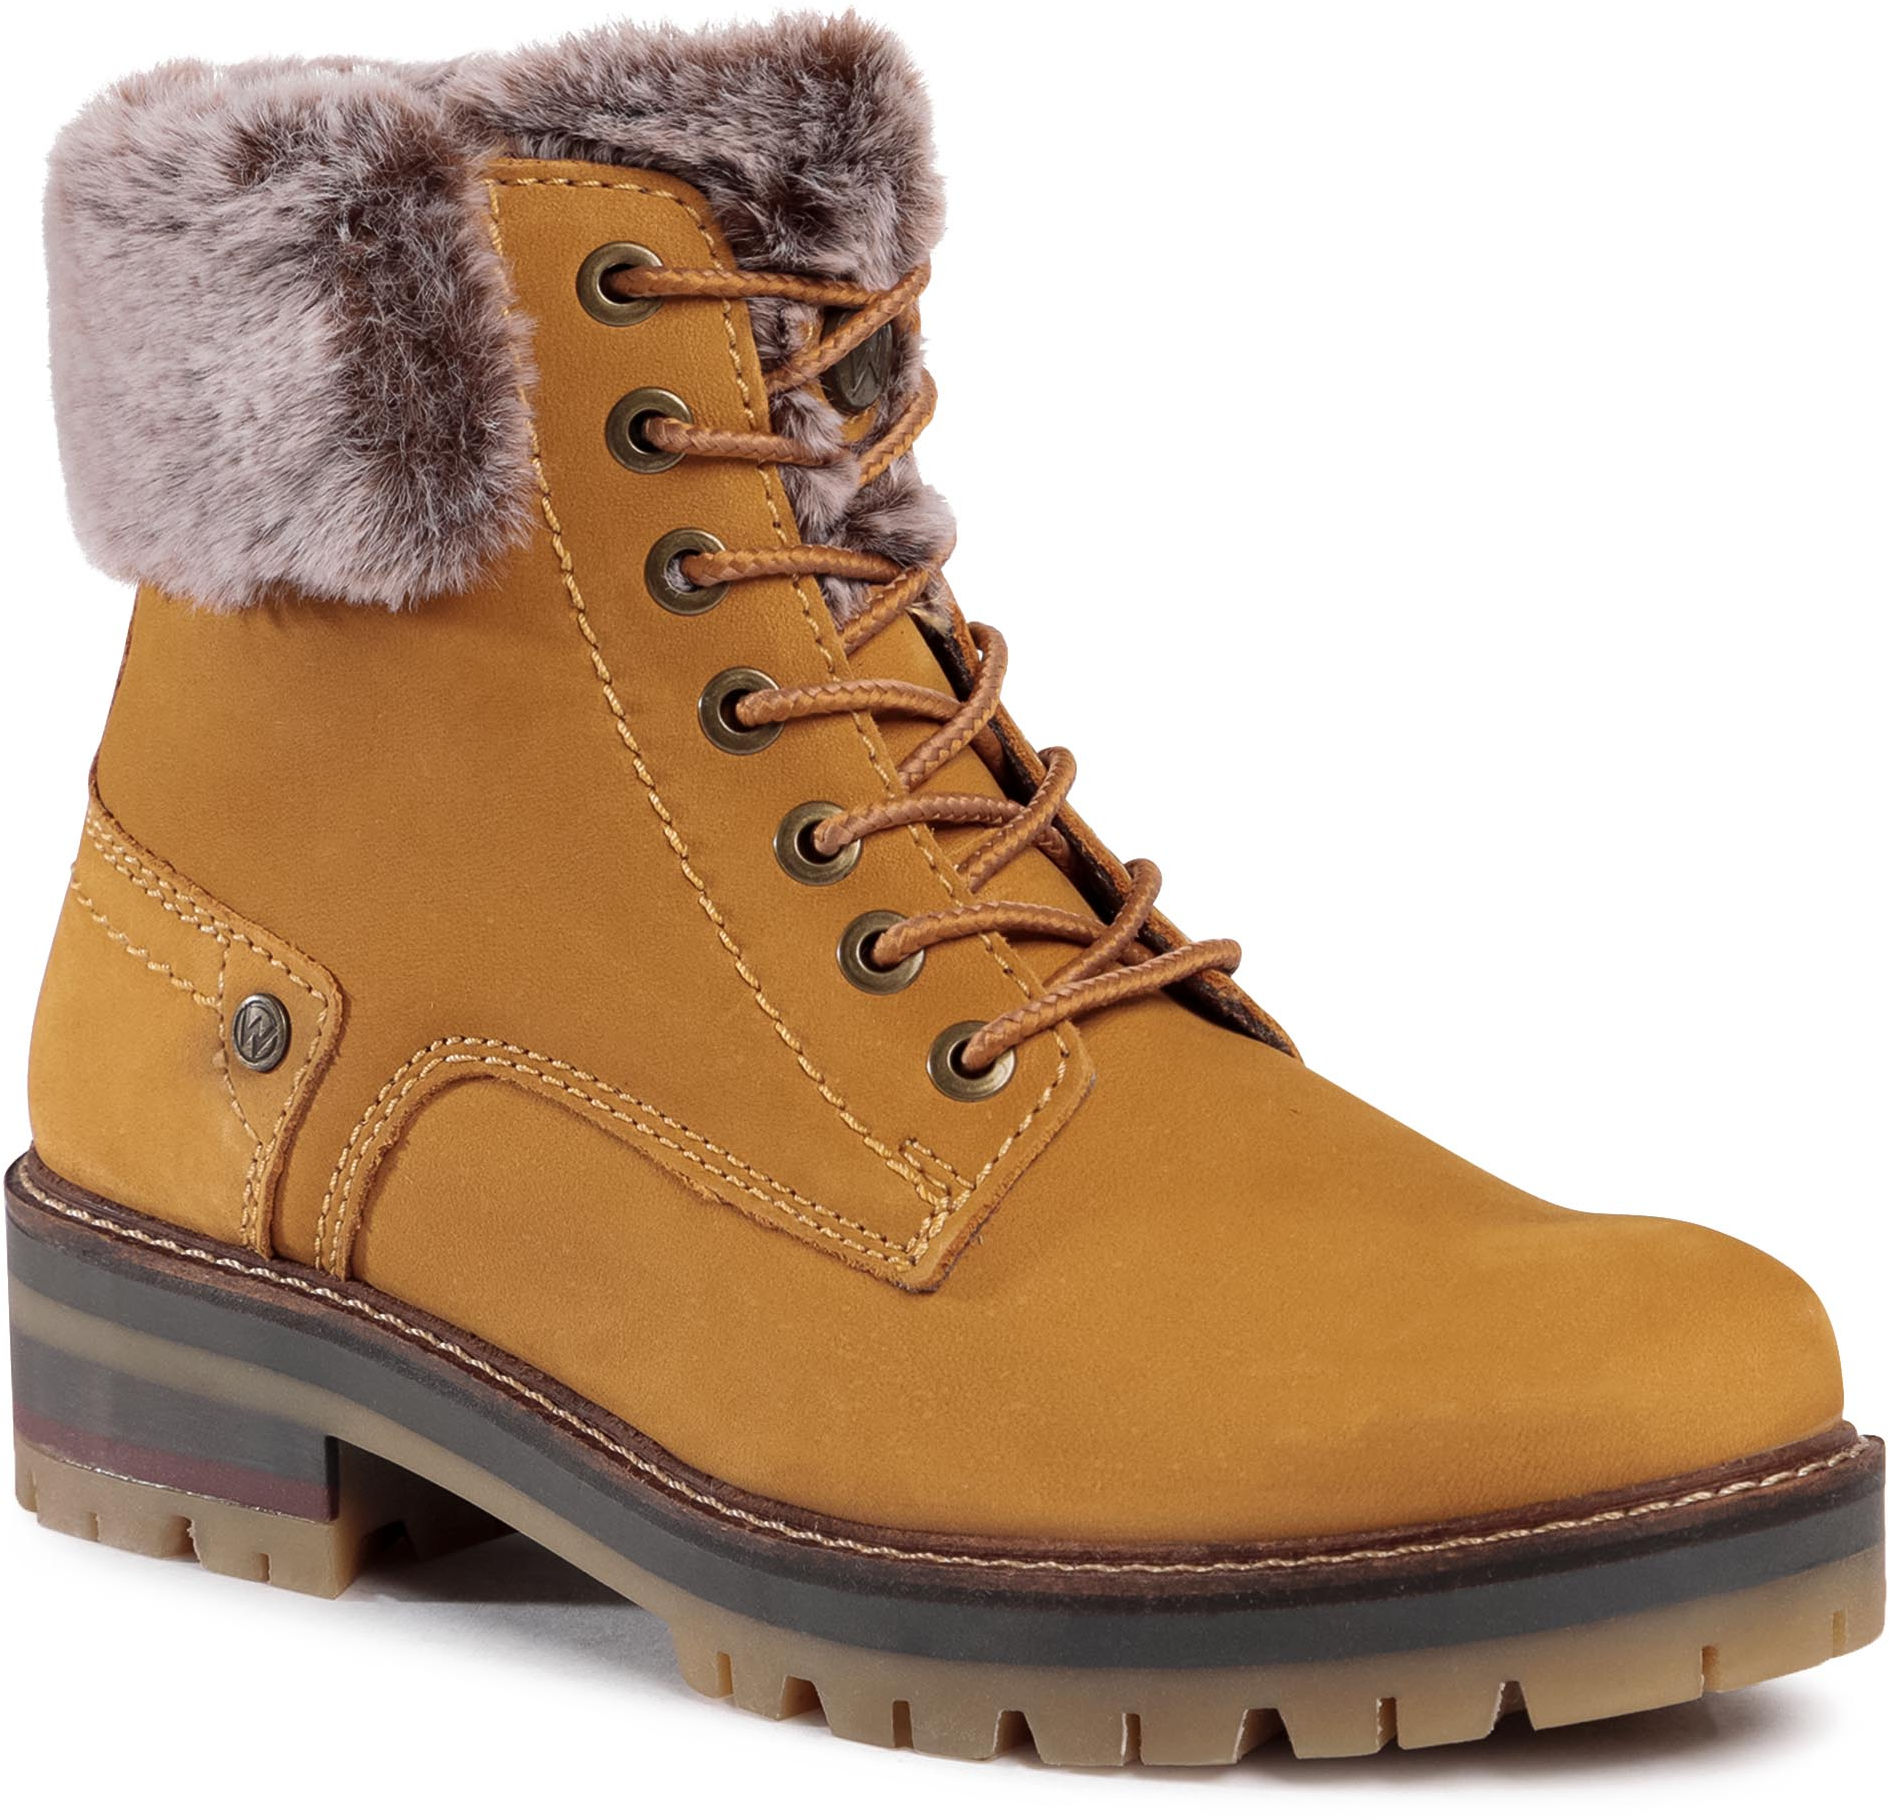 Botki WRANGLER - Denver Alaska WL02540A Tan Yellow 024